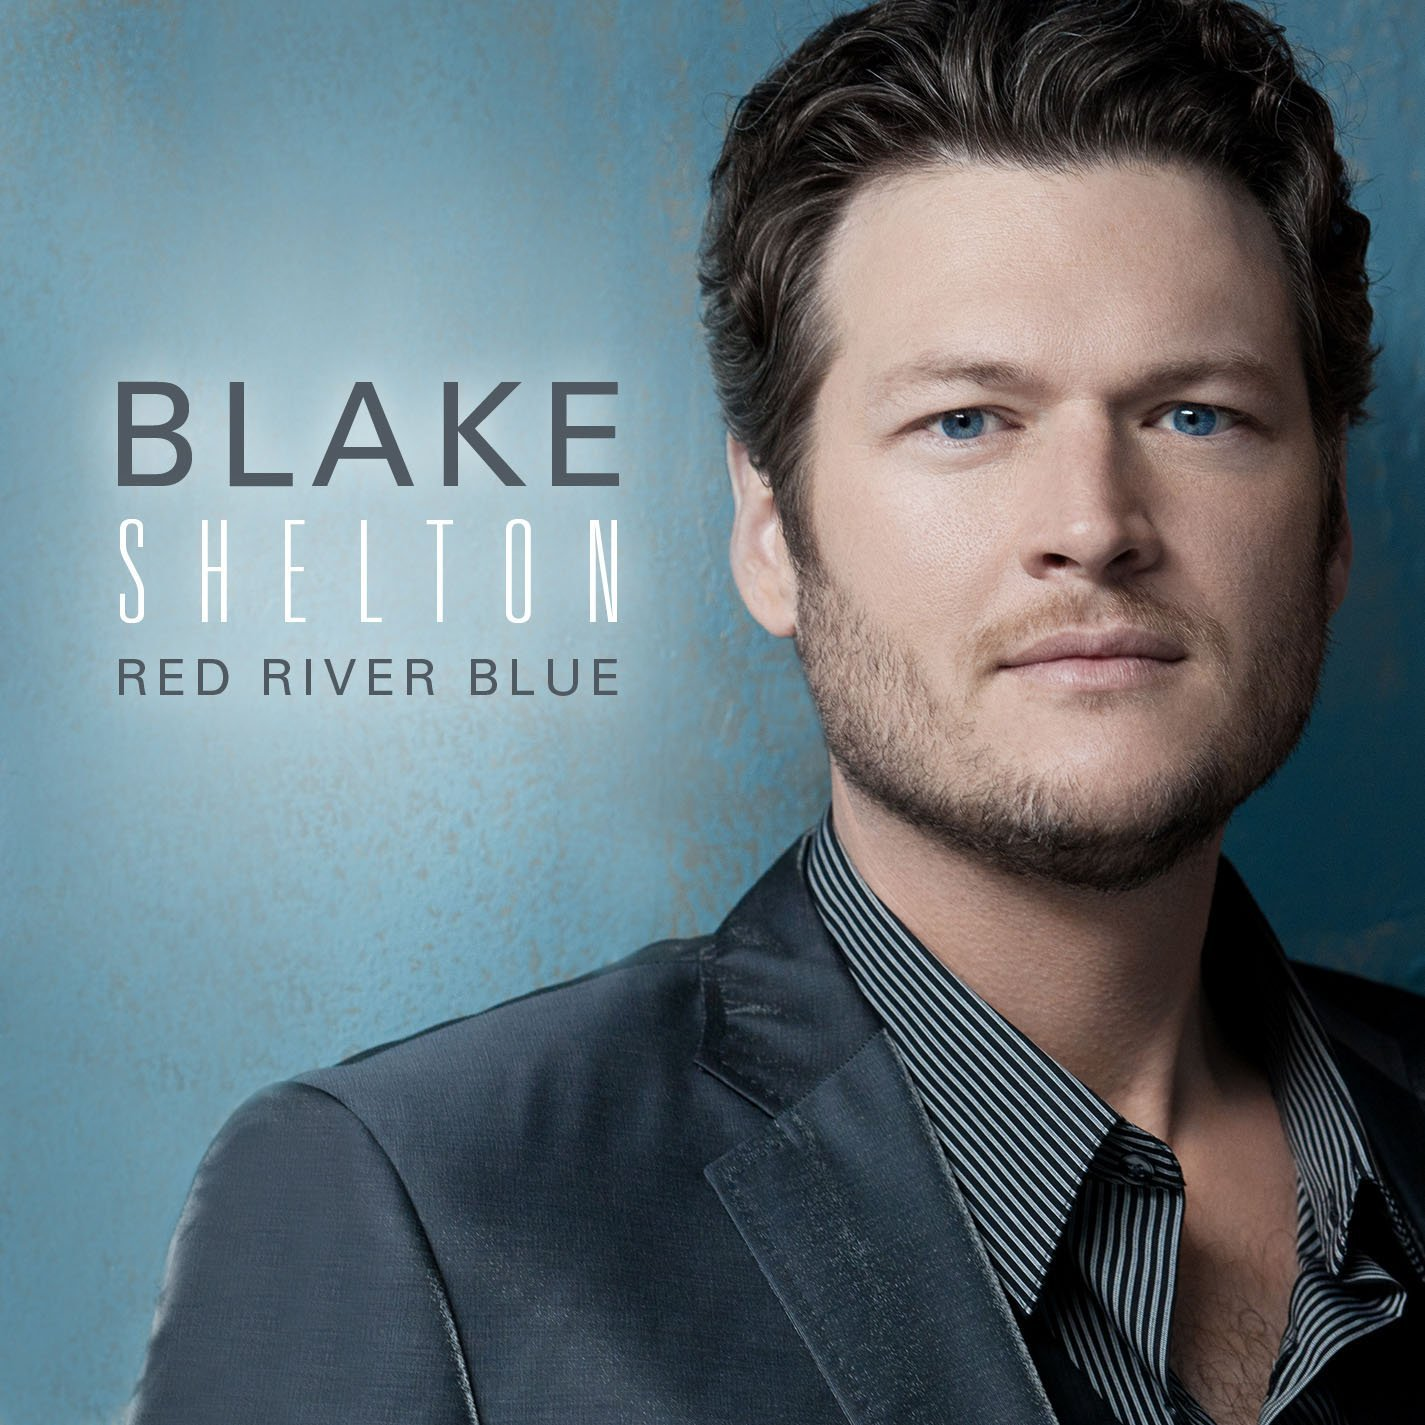 Blake Shelton, Red River Blue